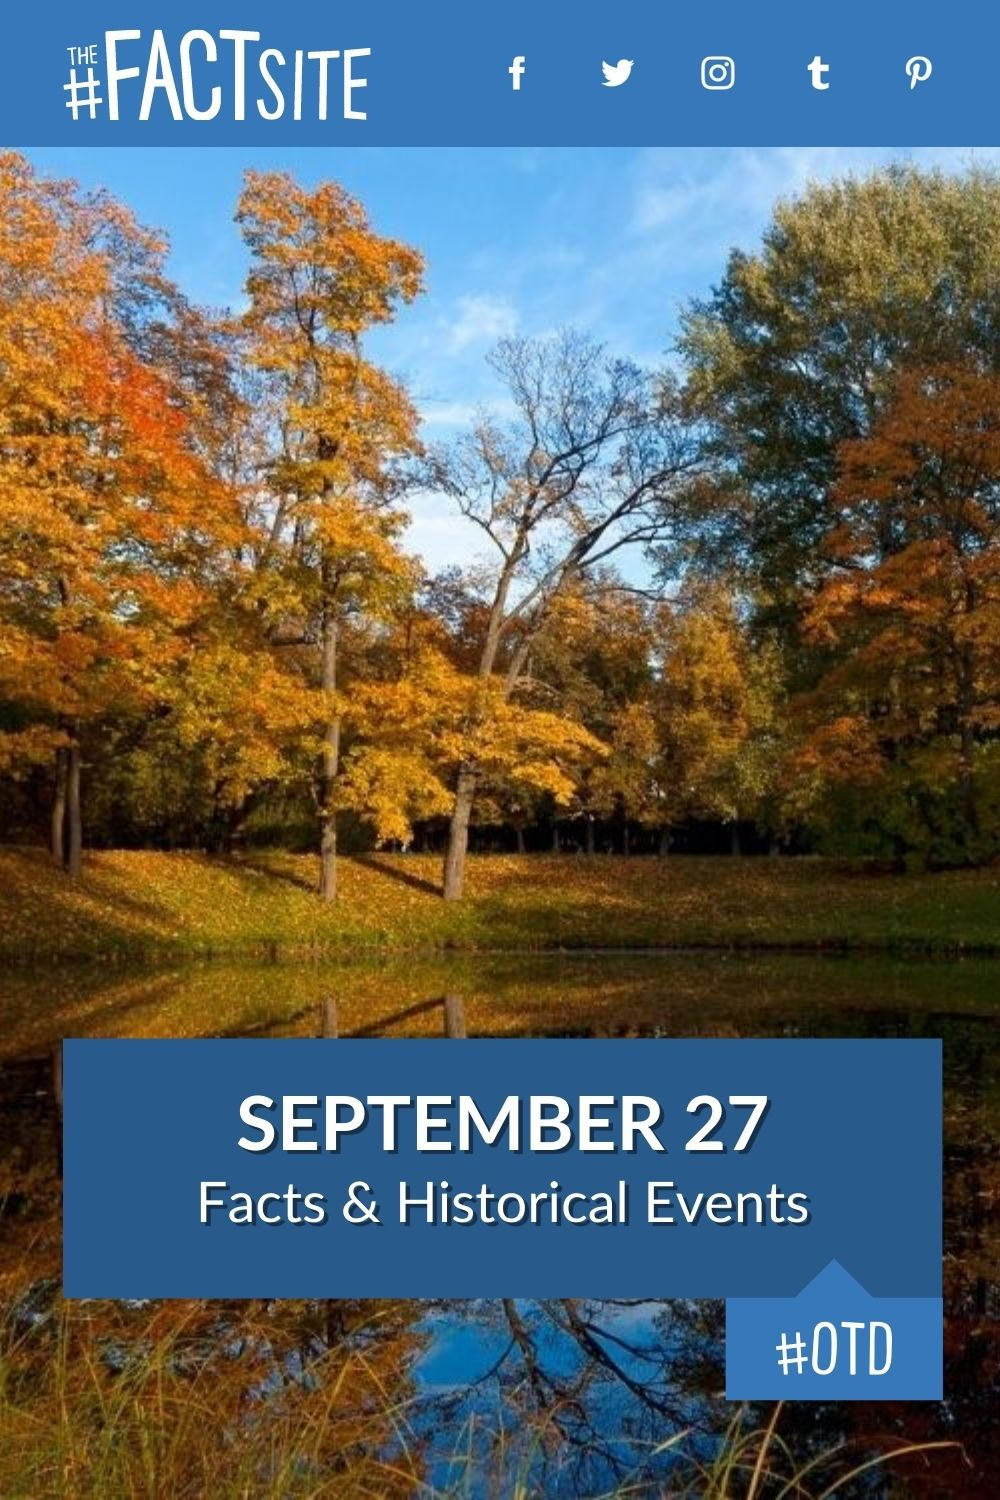 Facts & Historic Events That Happened on September 27